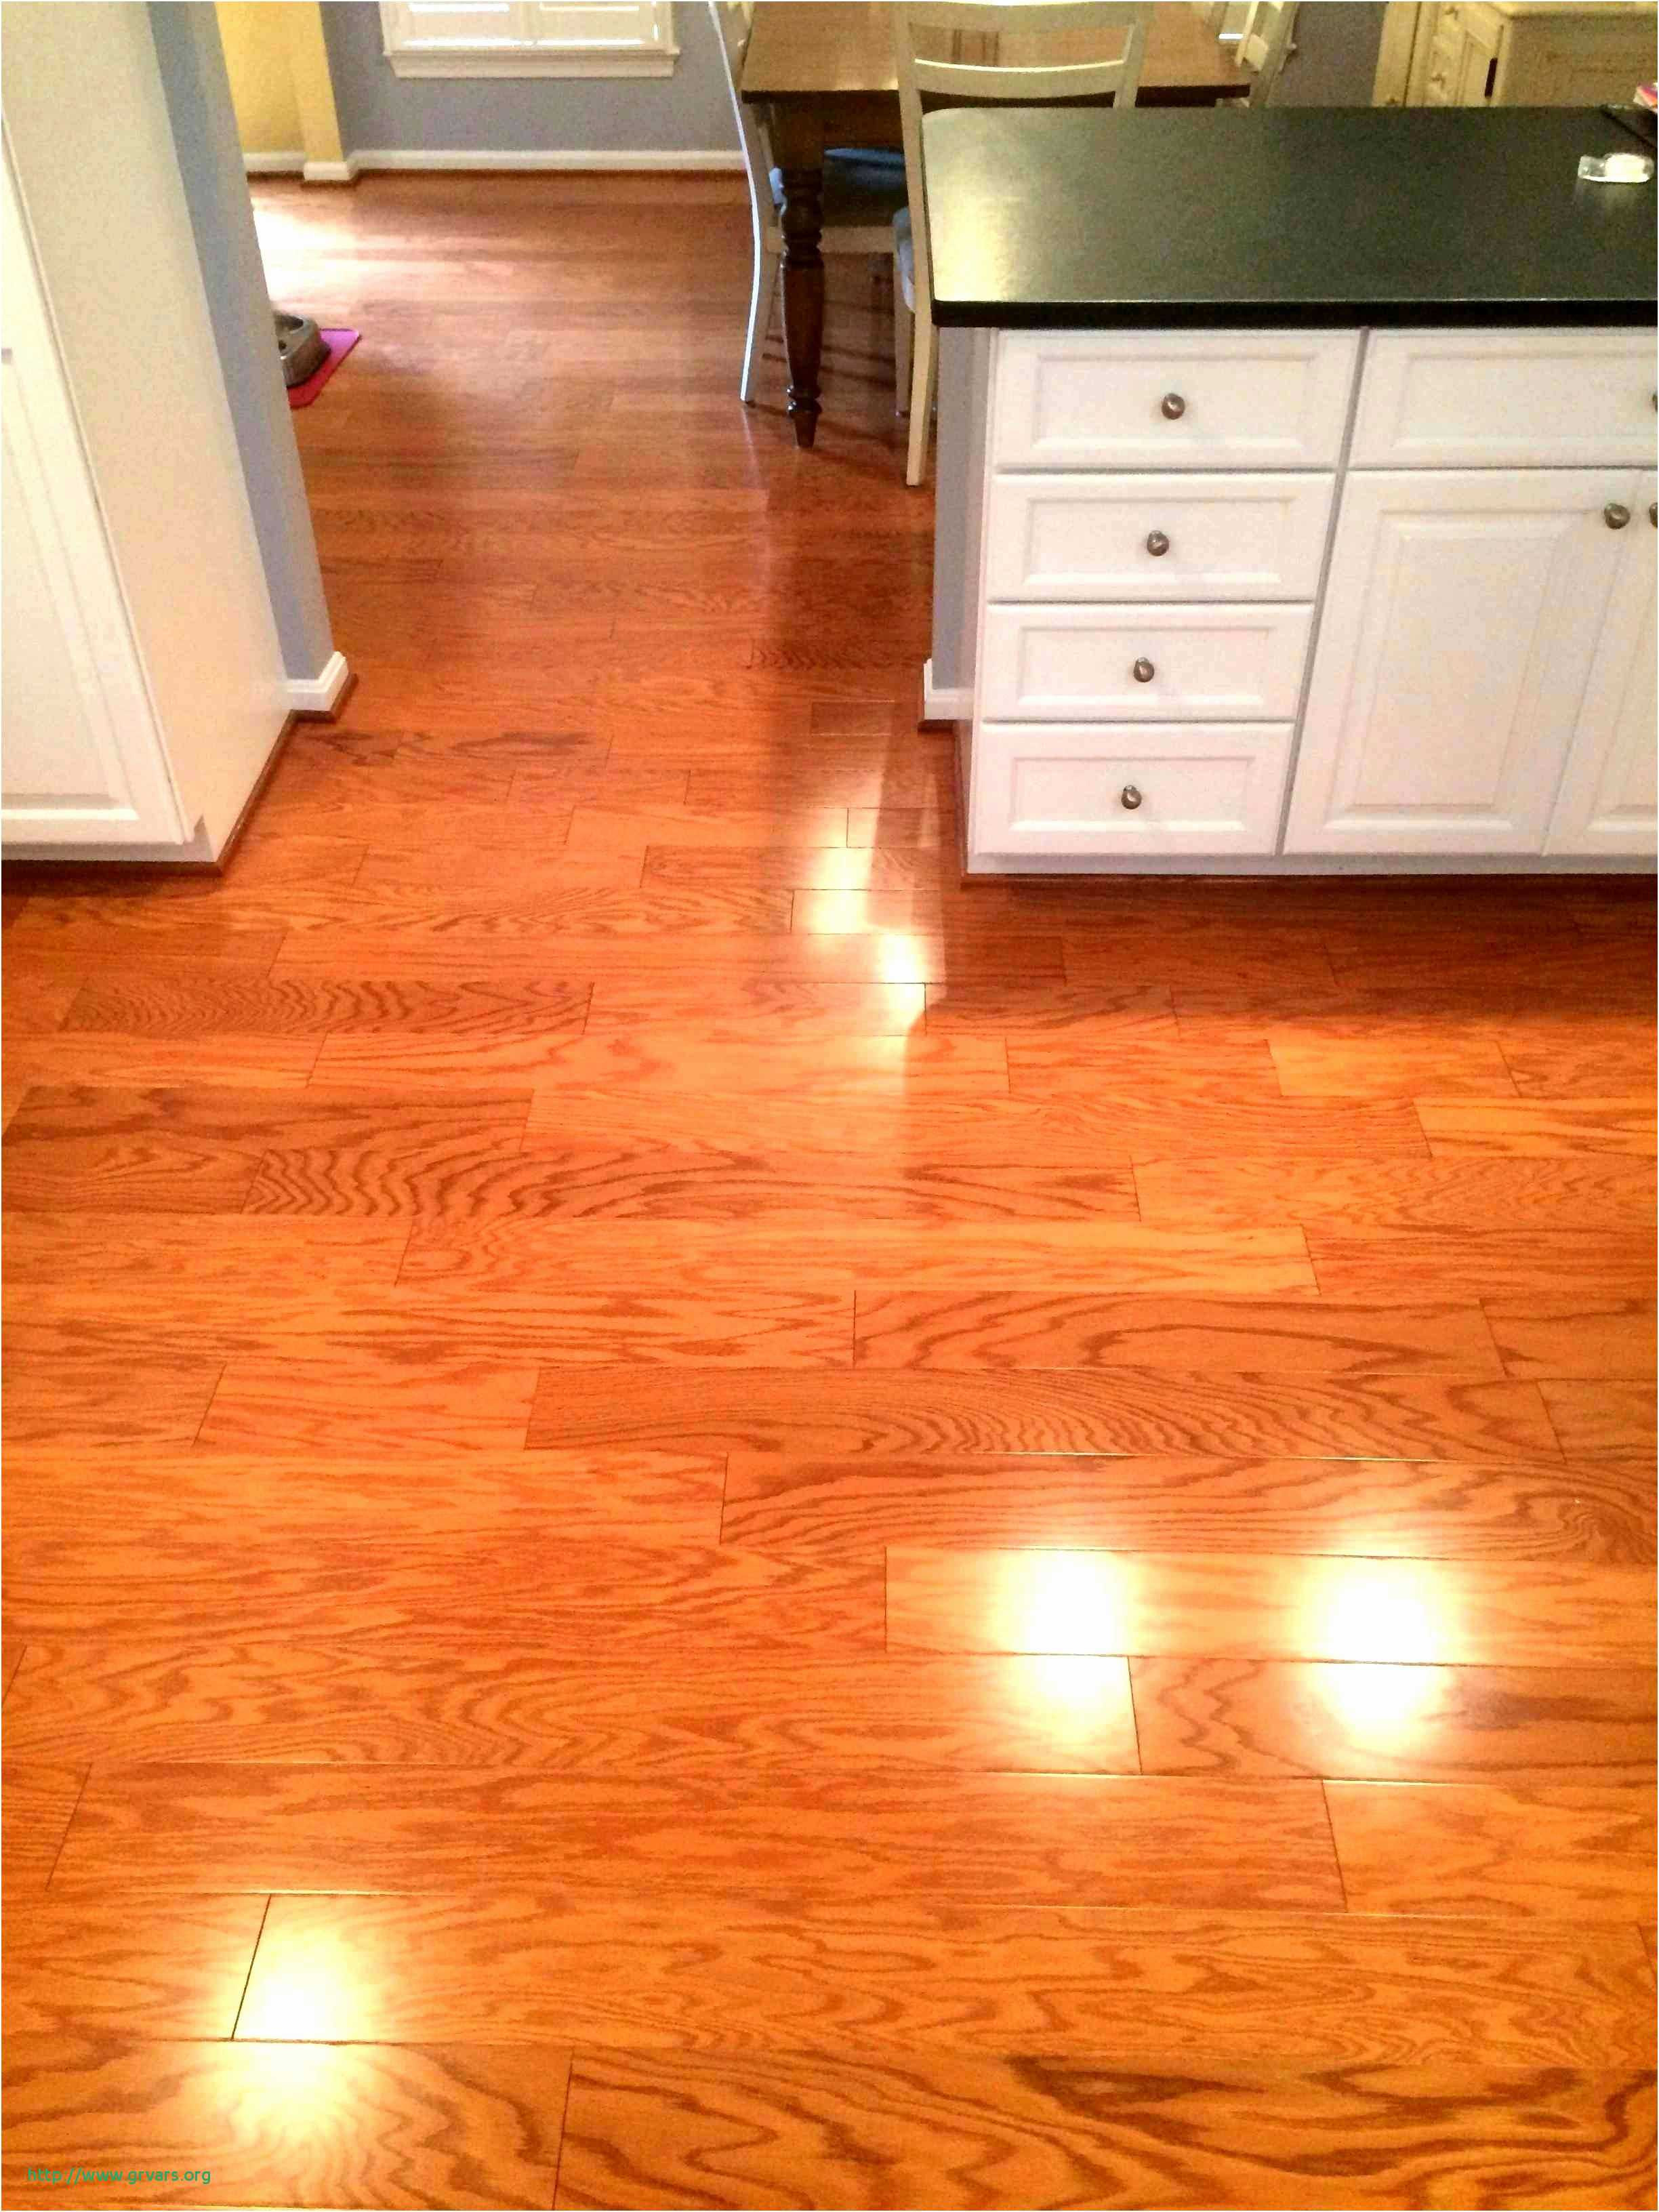 hardwood floor refinishing products home depot of 25 inspirant protective coating for hardwood floors ideas blog throughout bruce flooring best where to hardwood flooring inspirational 0d grace place barnegat